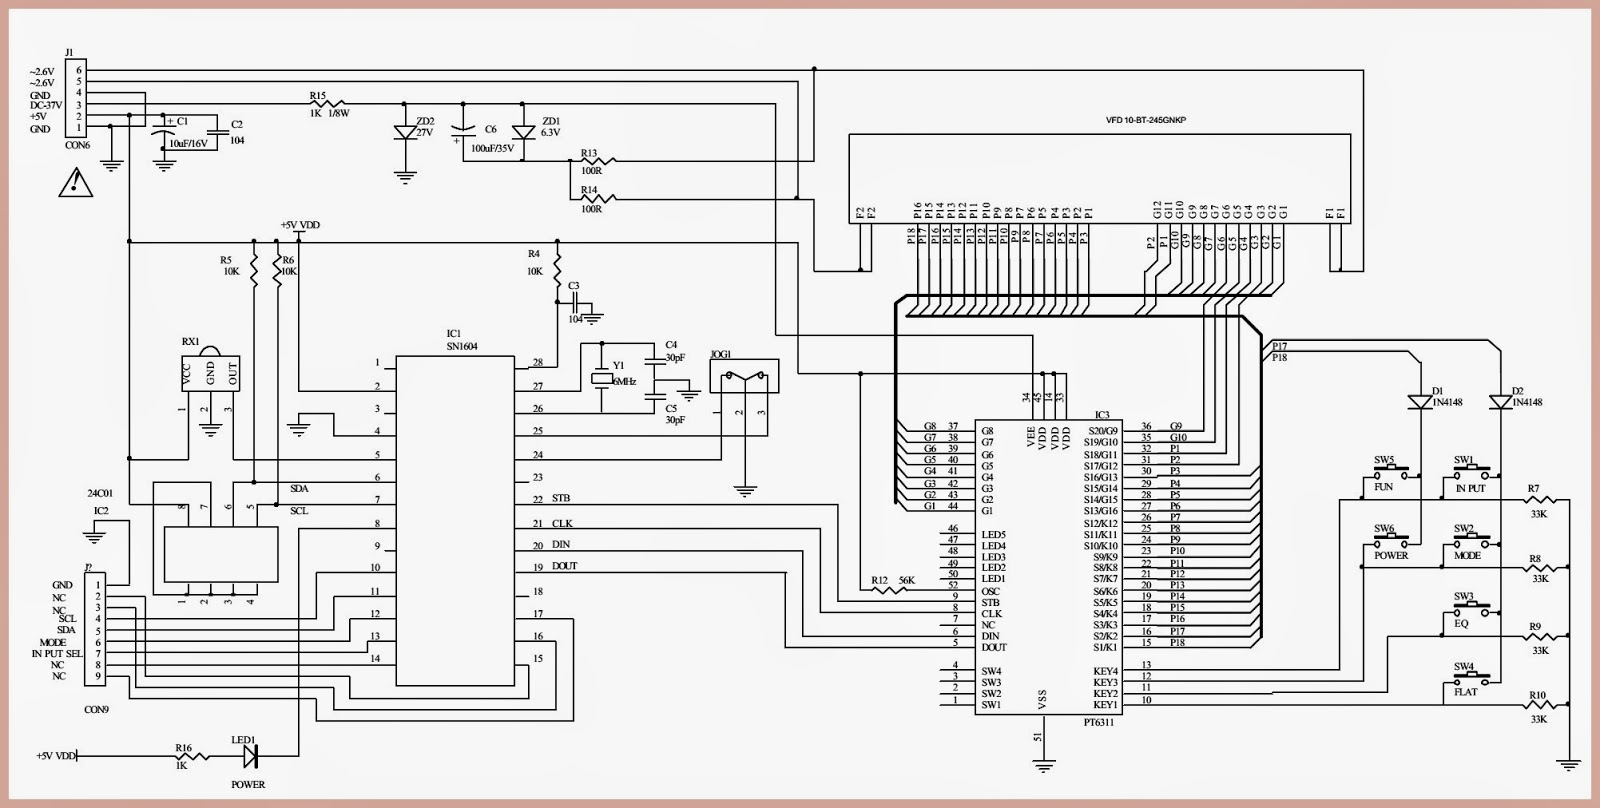 ladder diagram motor control circuit images likewise wiring diagram in addition vfd circuit diagram on vfd motor